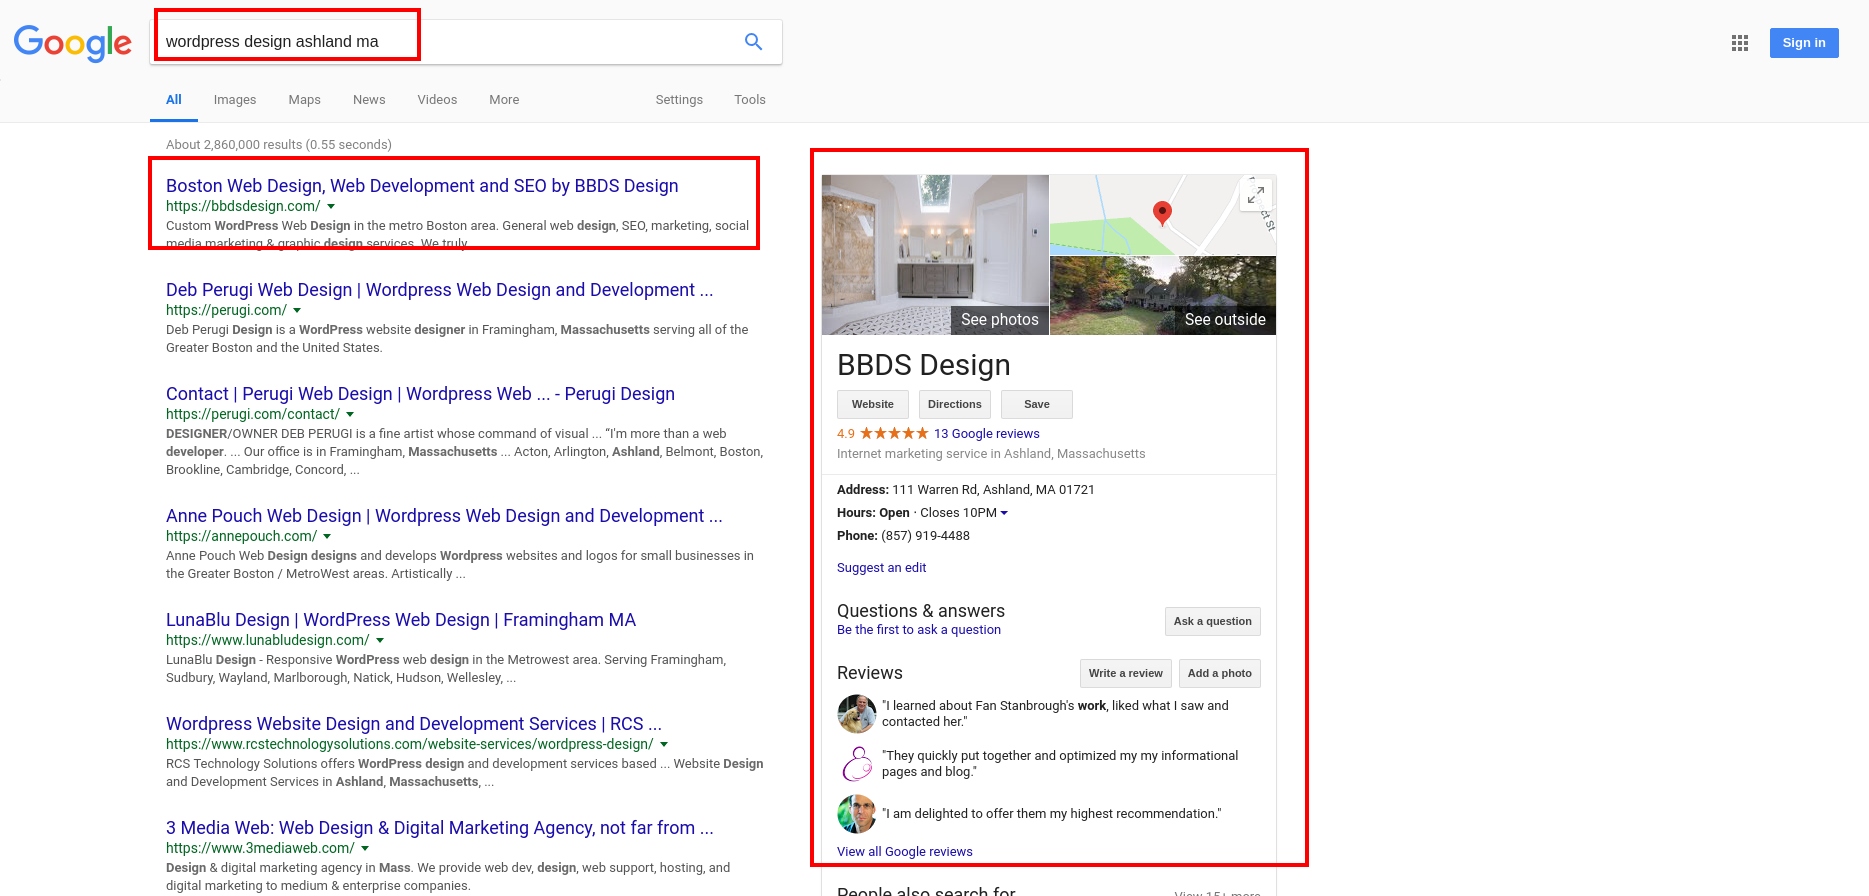 Sidebar business listing on Google search results page